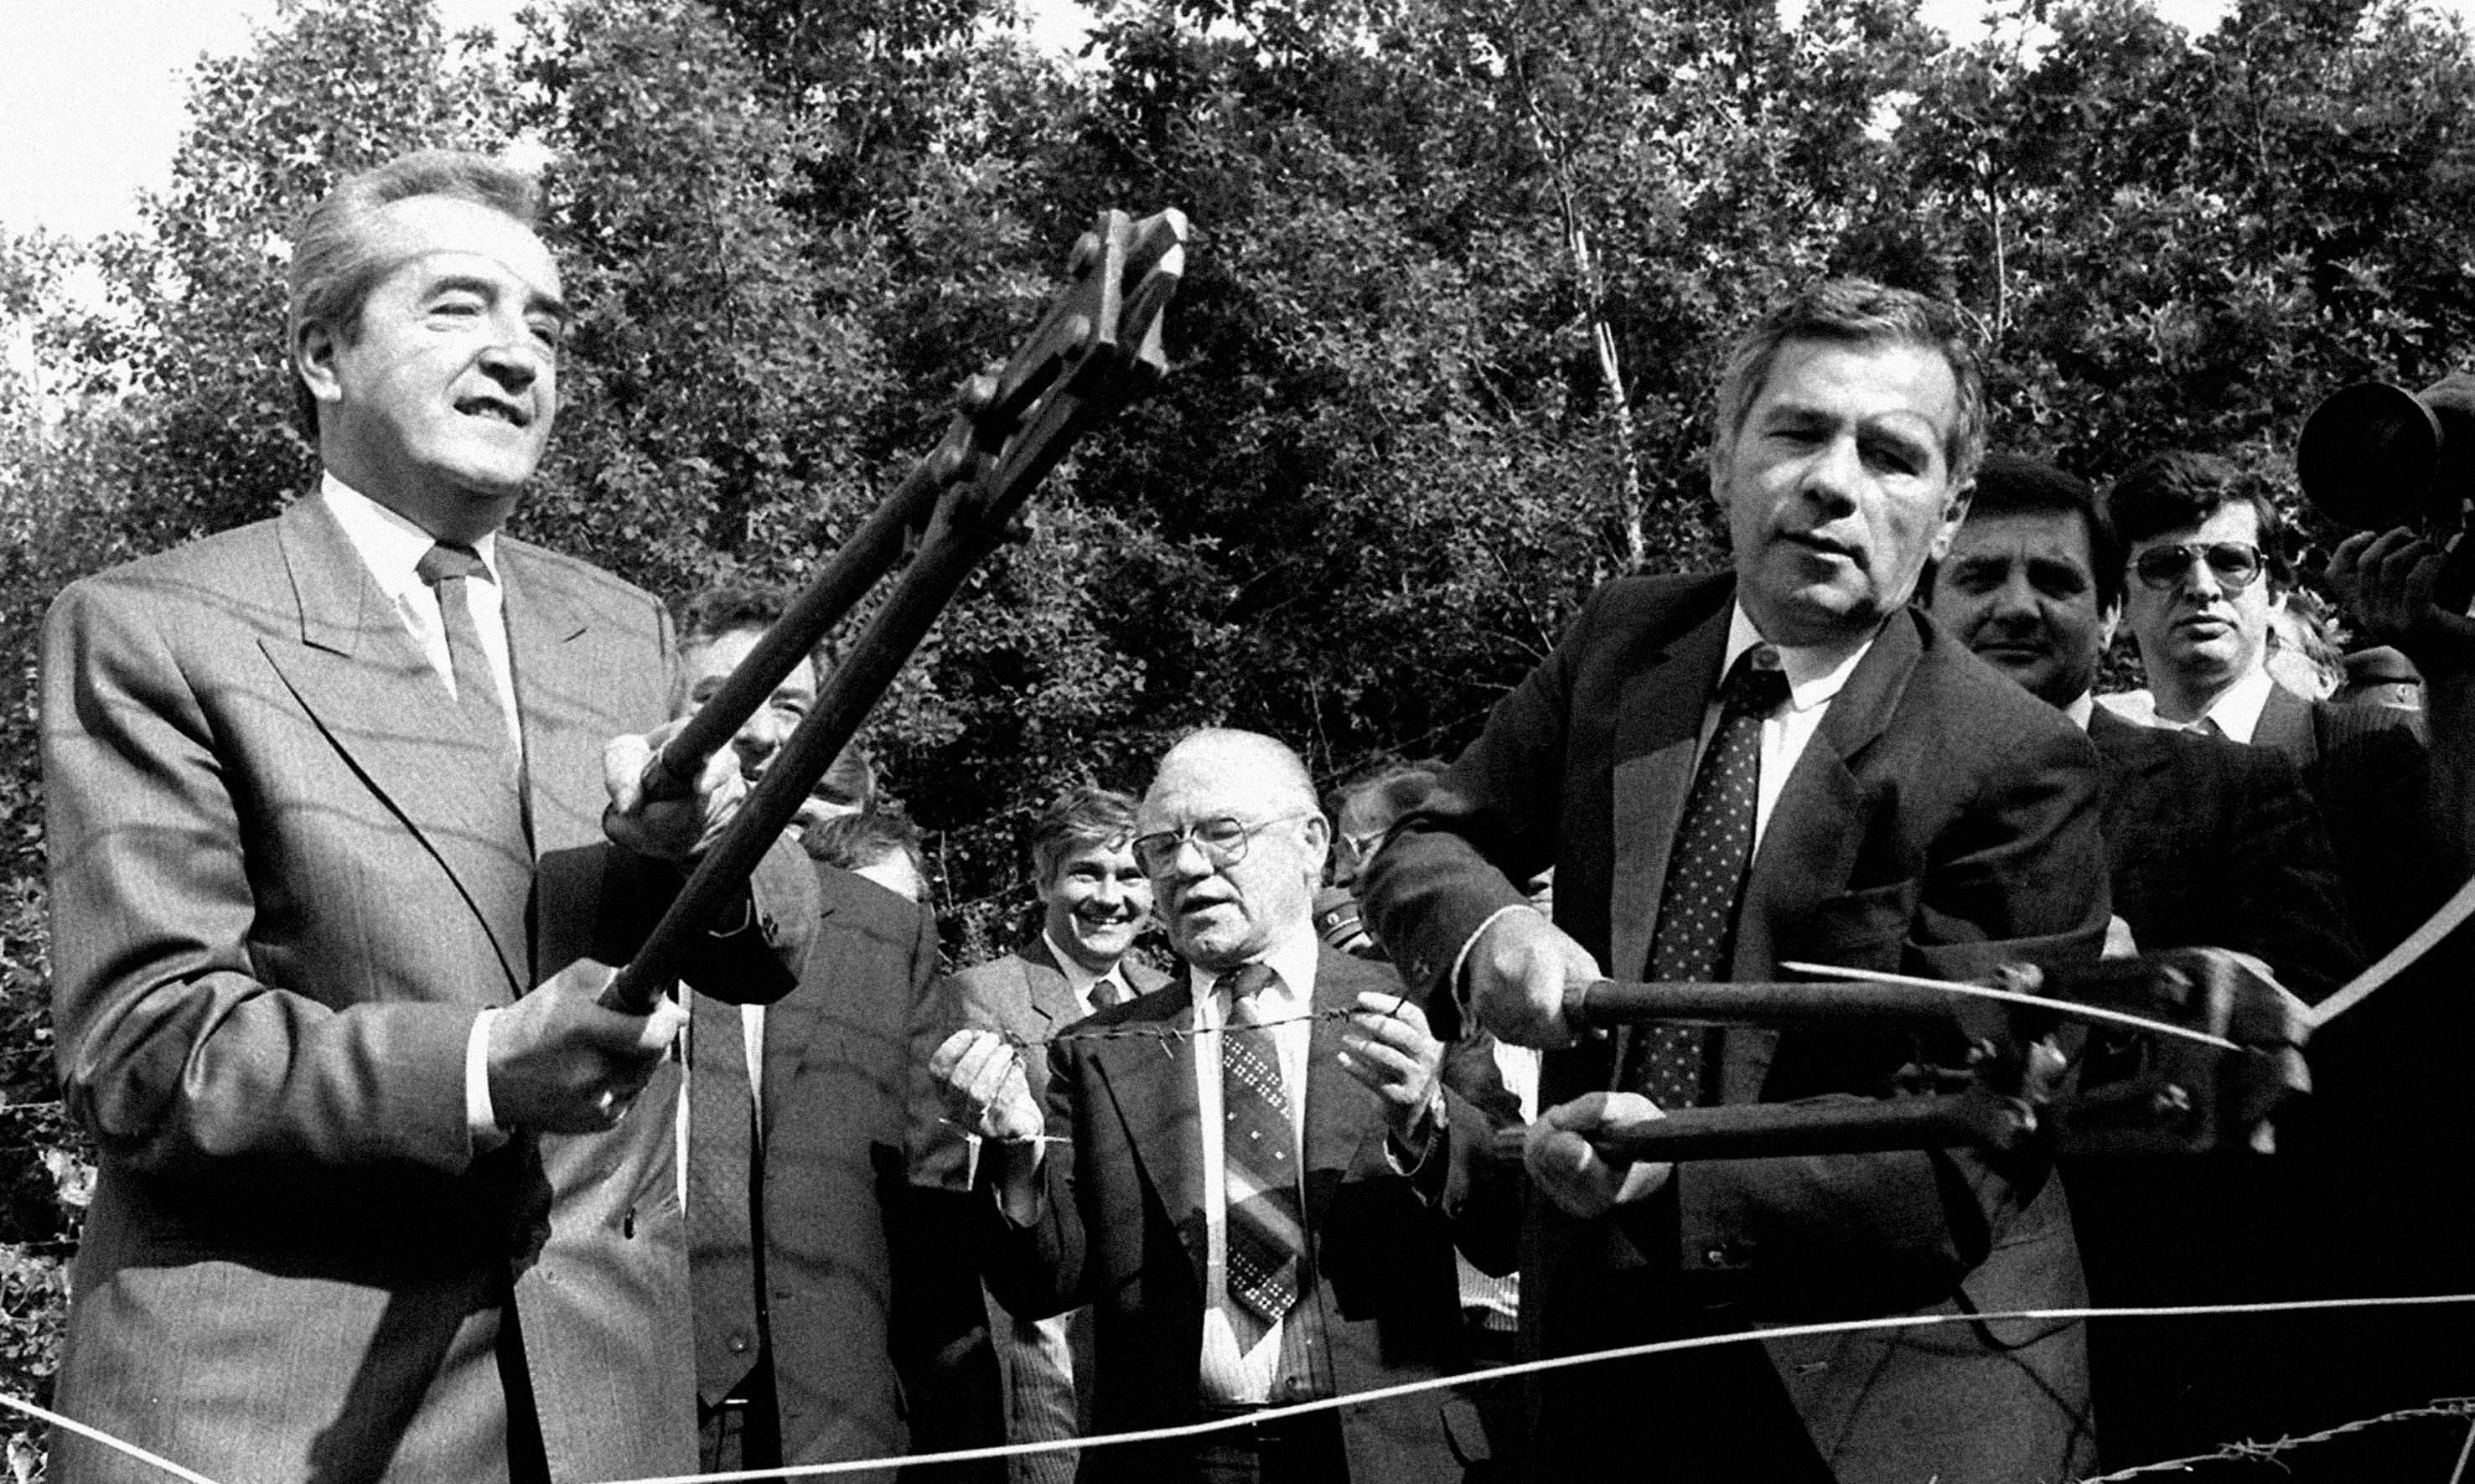 Snipping away at the Iron Curtain: when Hungary opened its Austrian border - archive, 1989